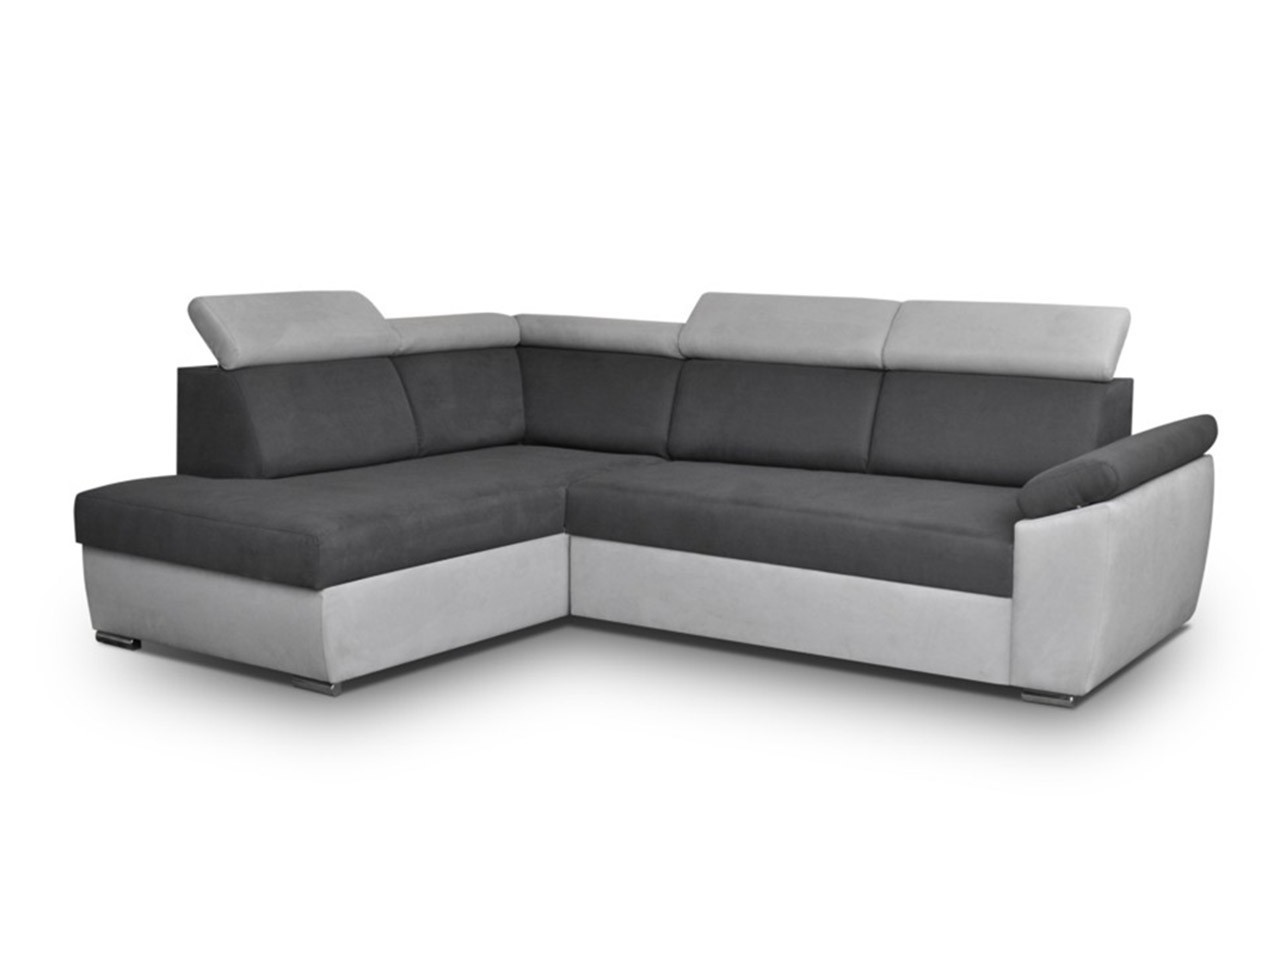 Ecksofa Mit Bettfunktion M Bel Gt Sofas Couches Ecksofas Ecksofa Bandos Mit Bettfunktion